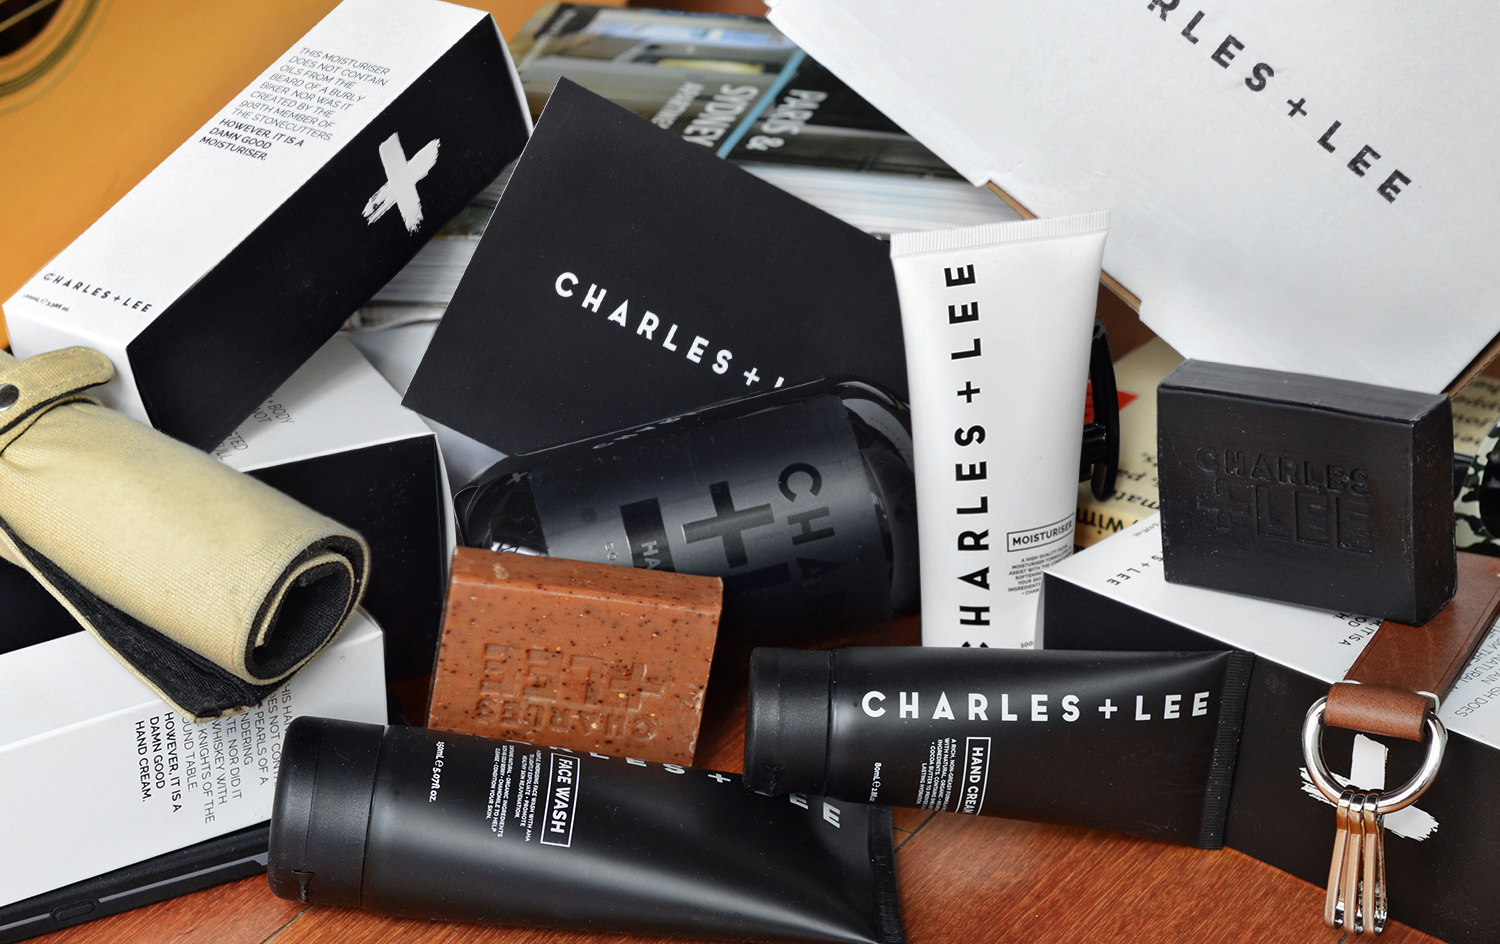 Charles + Lee Men's Skincare